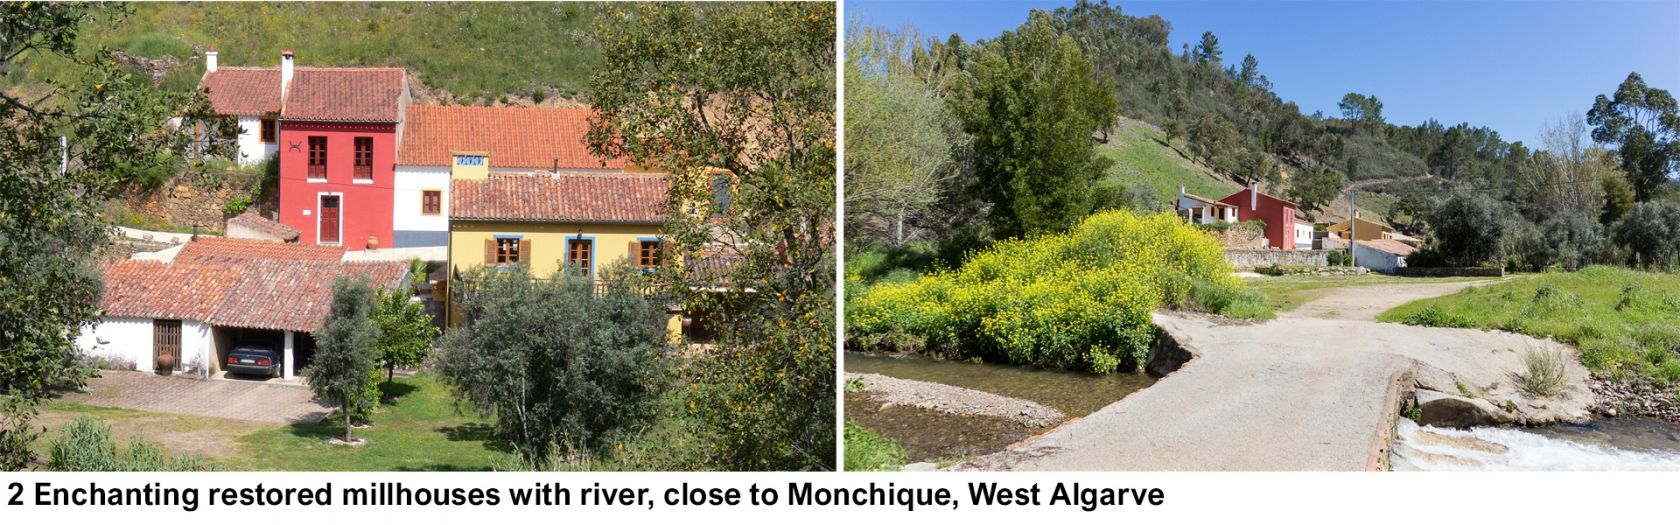 LG1082 - 2 Enchanting restored millhouses with river, close to Monchique, West Algarve